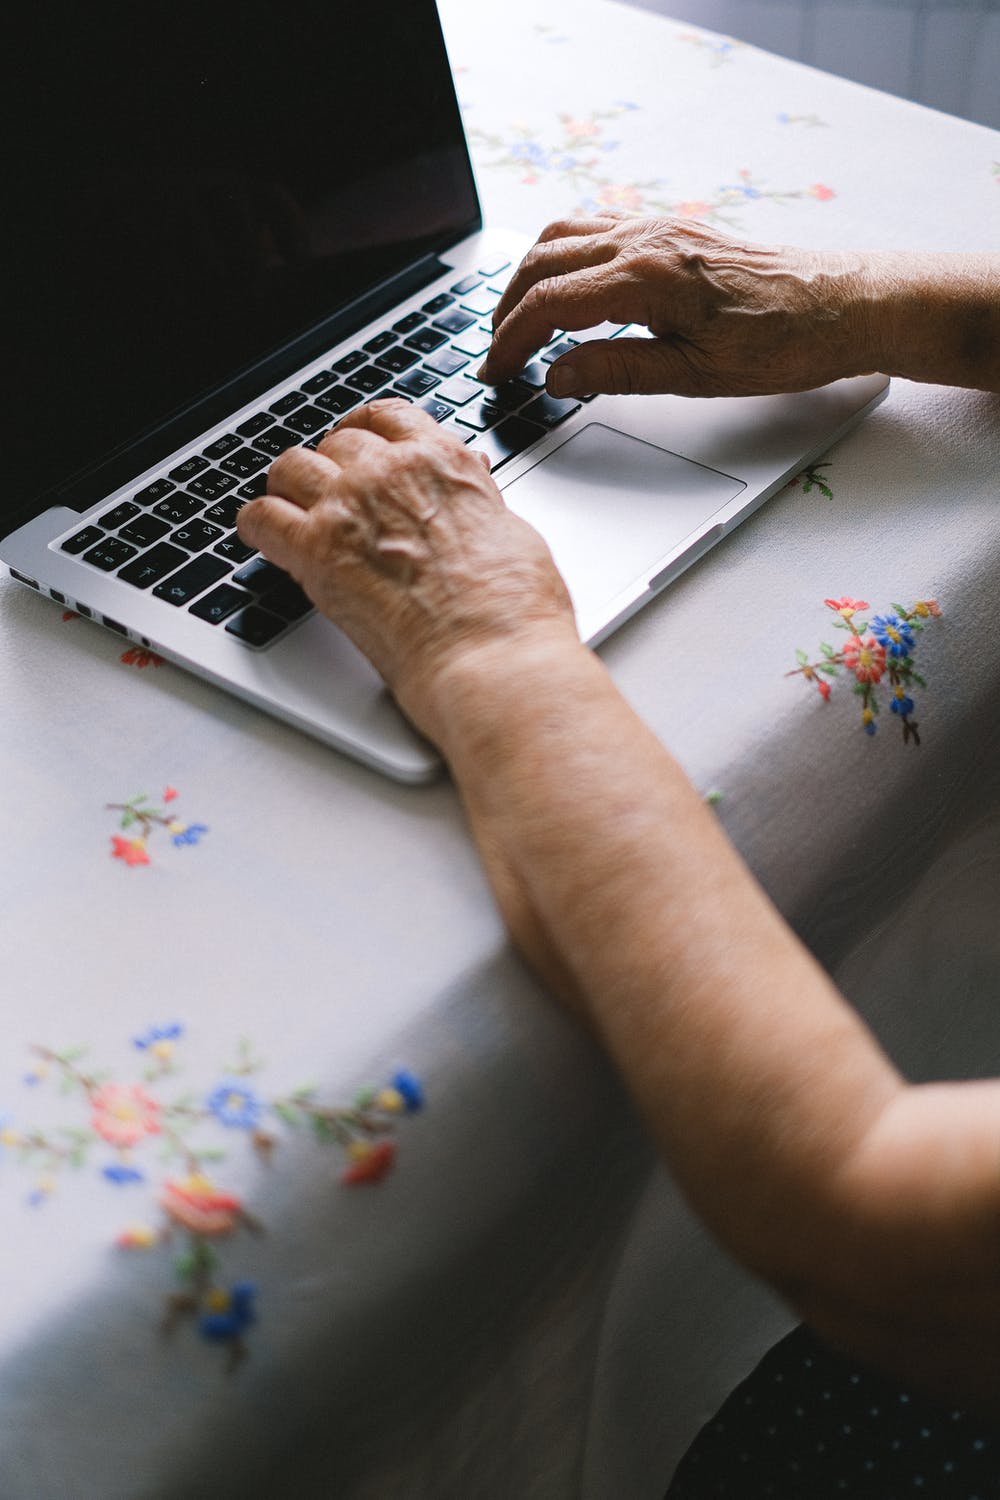 Hands typing on a computer. | Source: Pexels